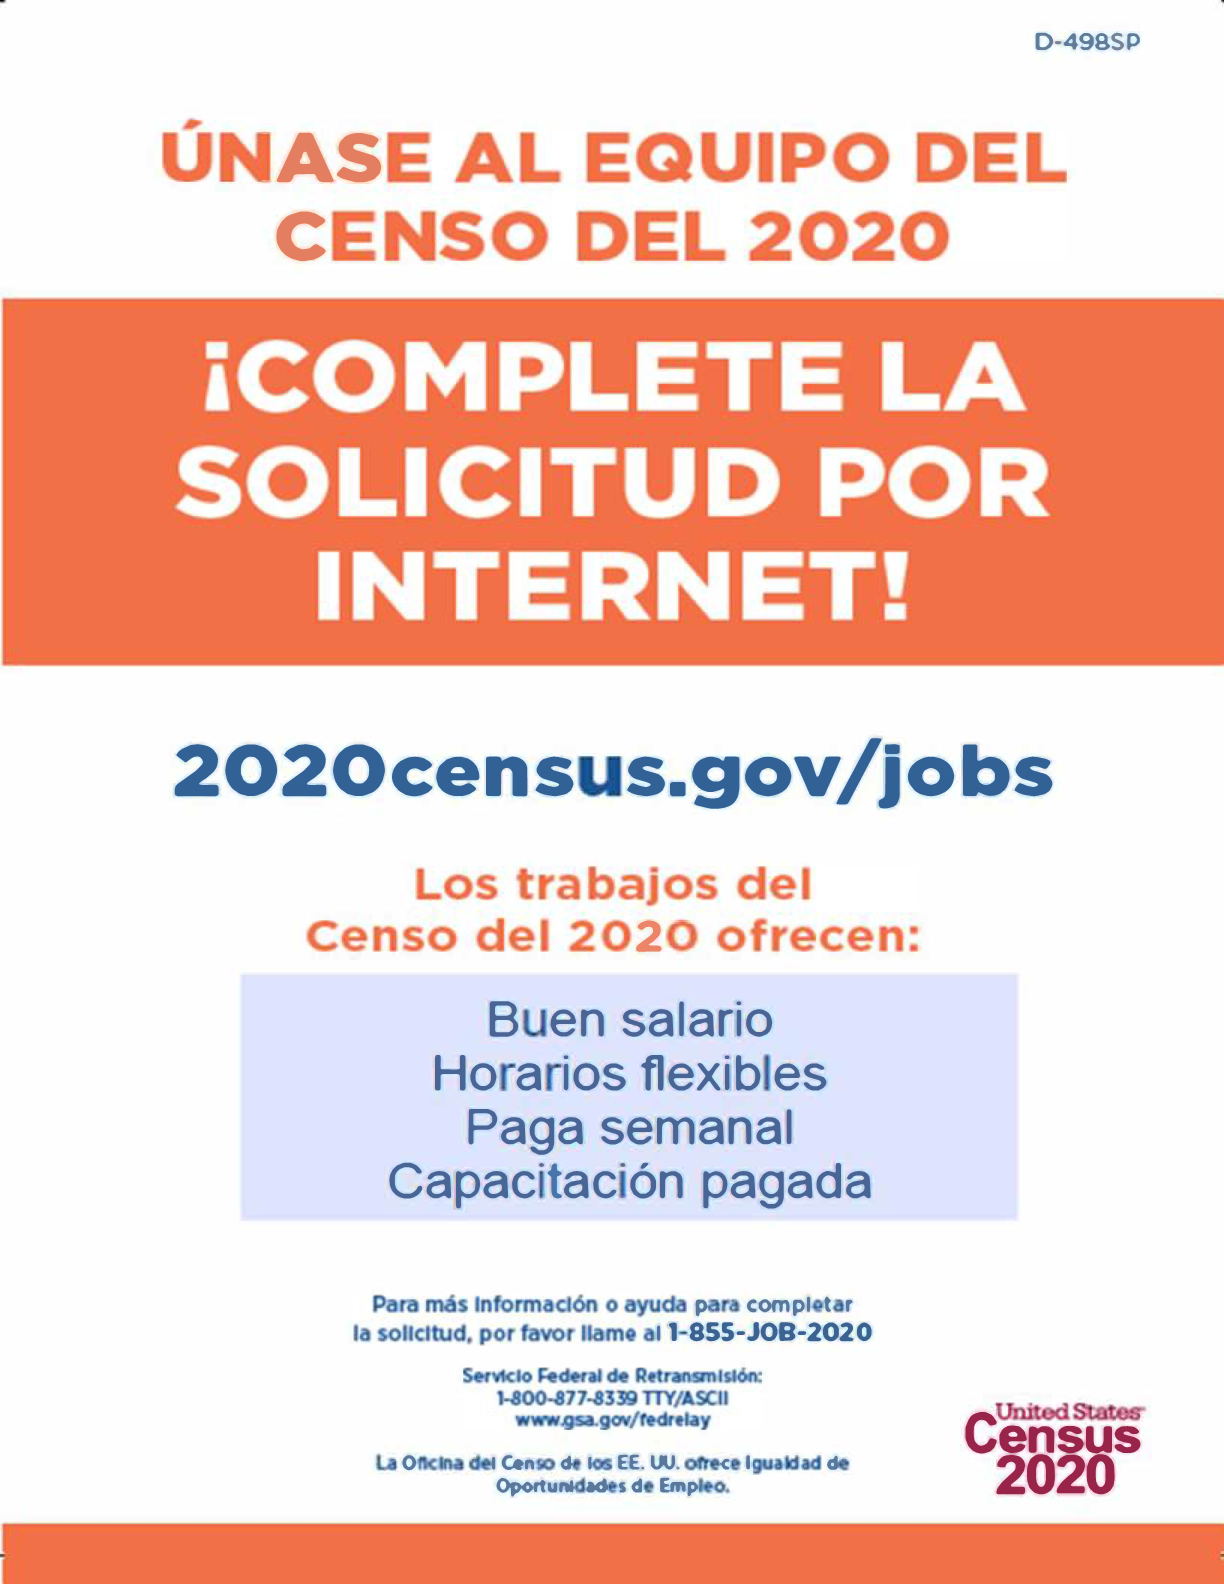 Census Jobs Poster in Spanish